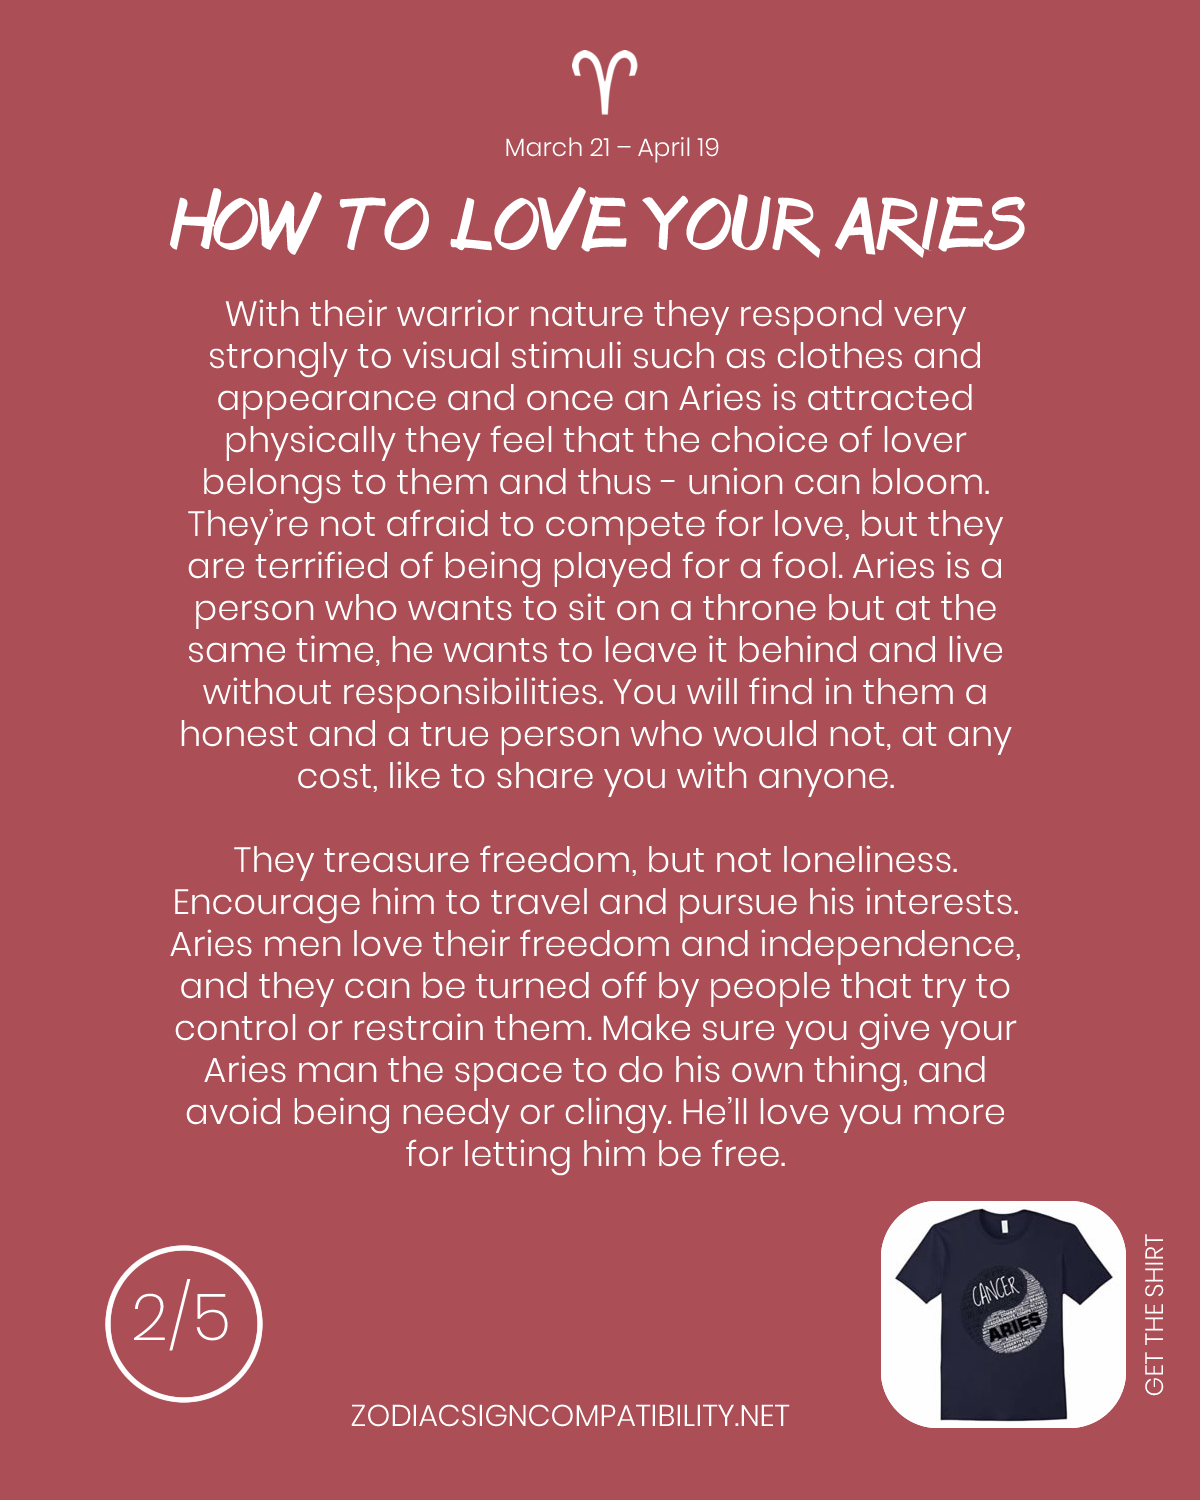 Zodiac Signs Compatibility: Aries Compatibility - How to love your Aries #2   Aries and gemini